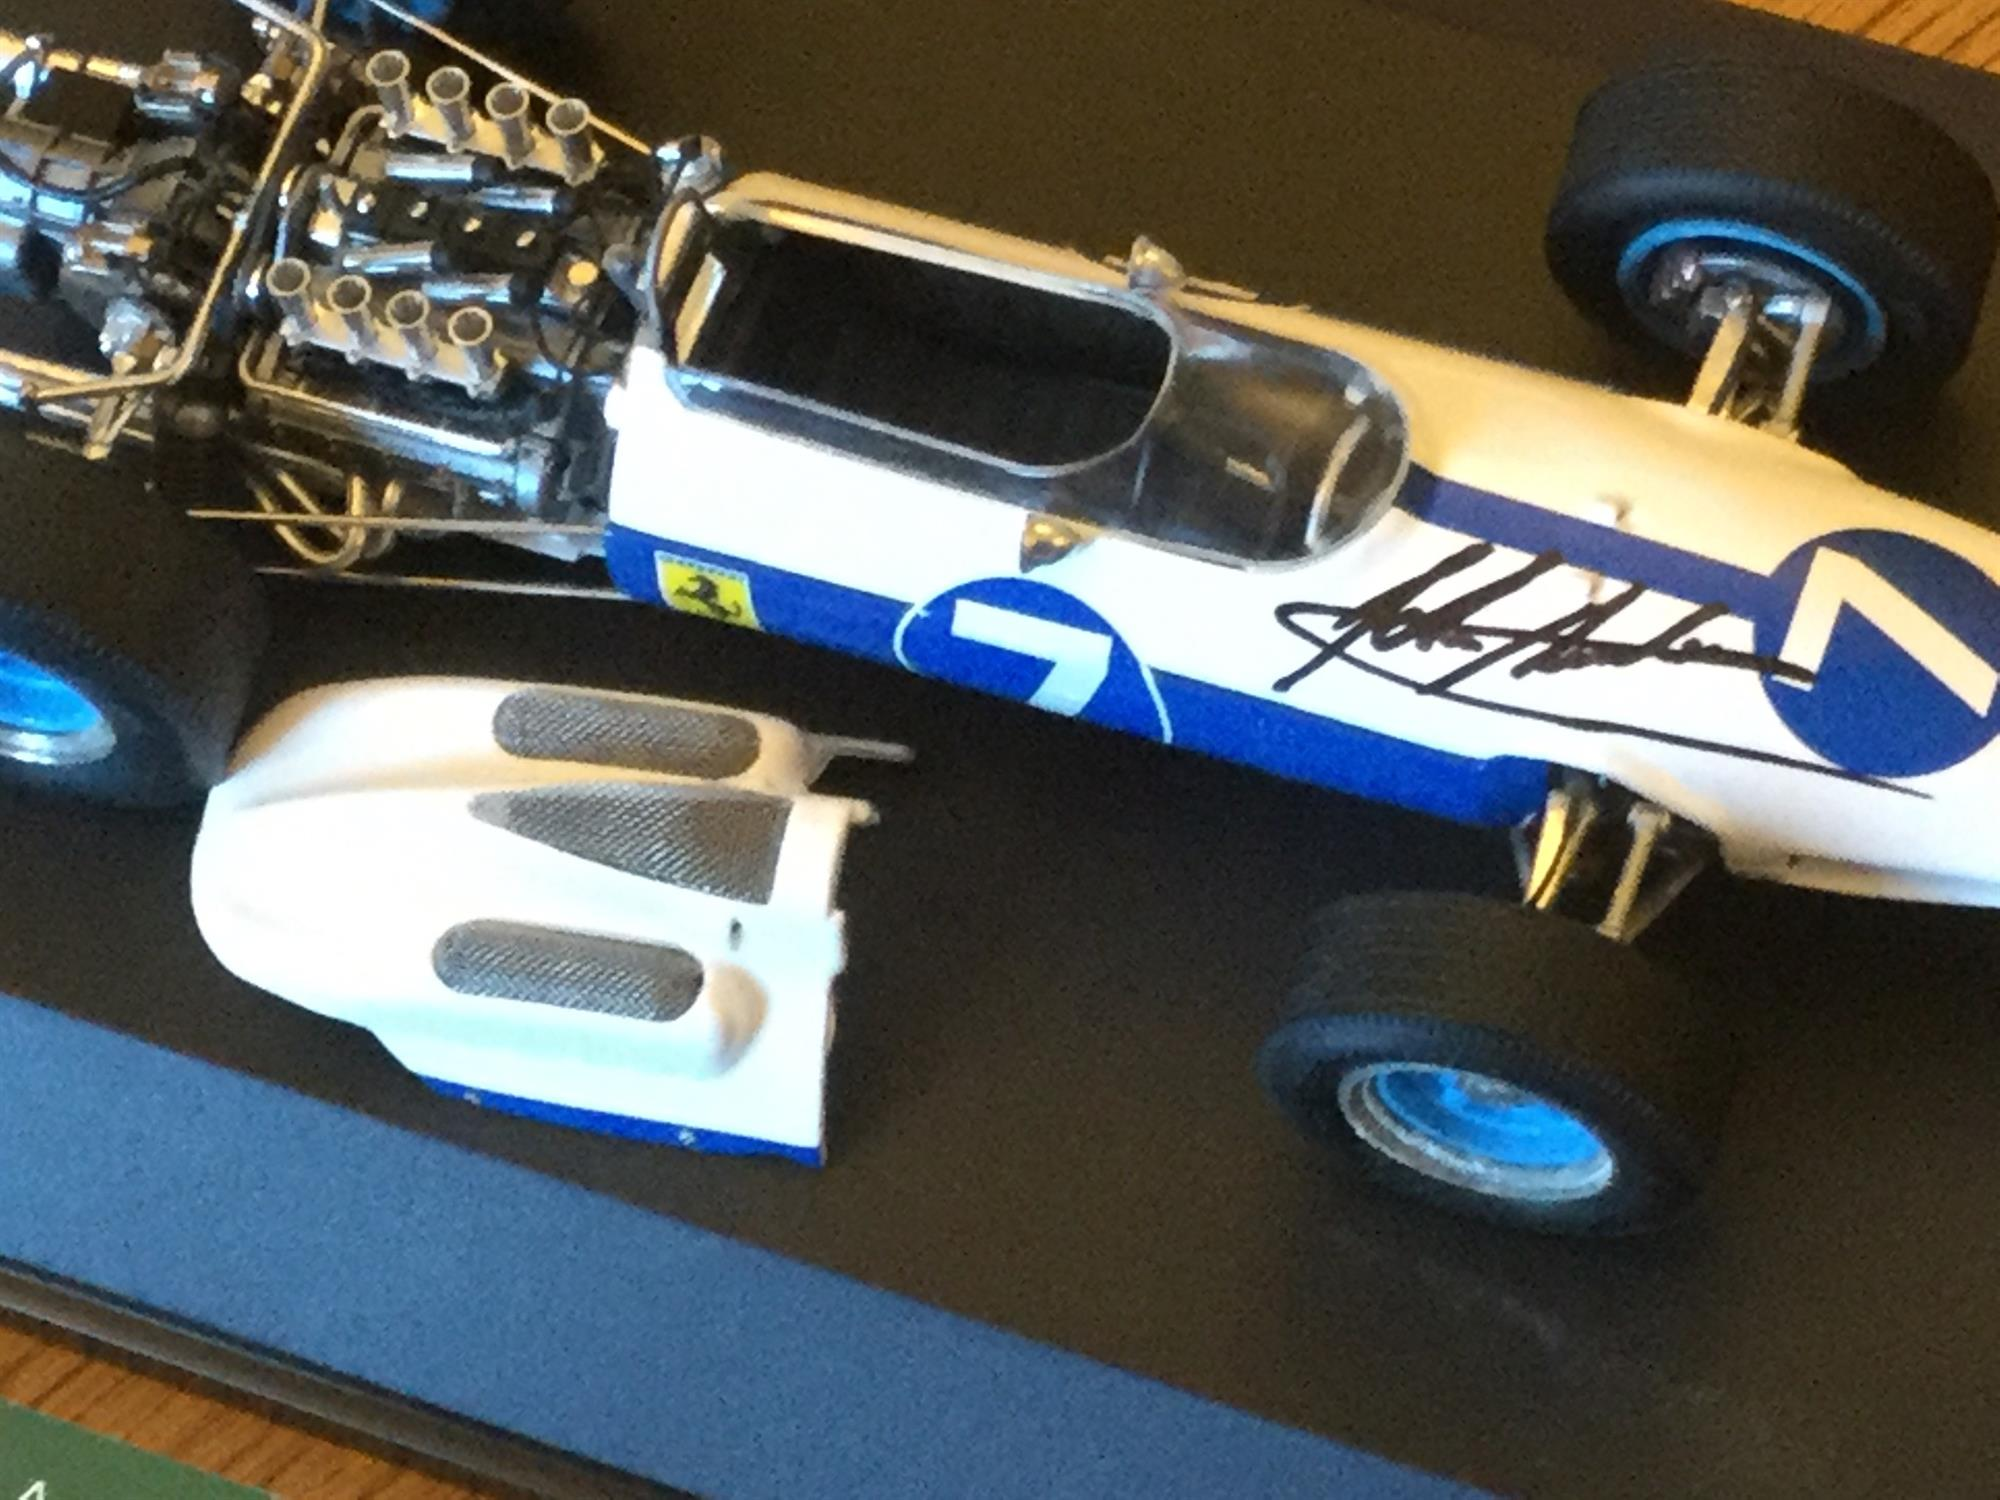 Superb John Surtees Tribute Collection of Models and Memorabilia - Image 6 of 8